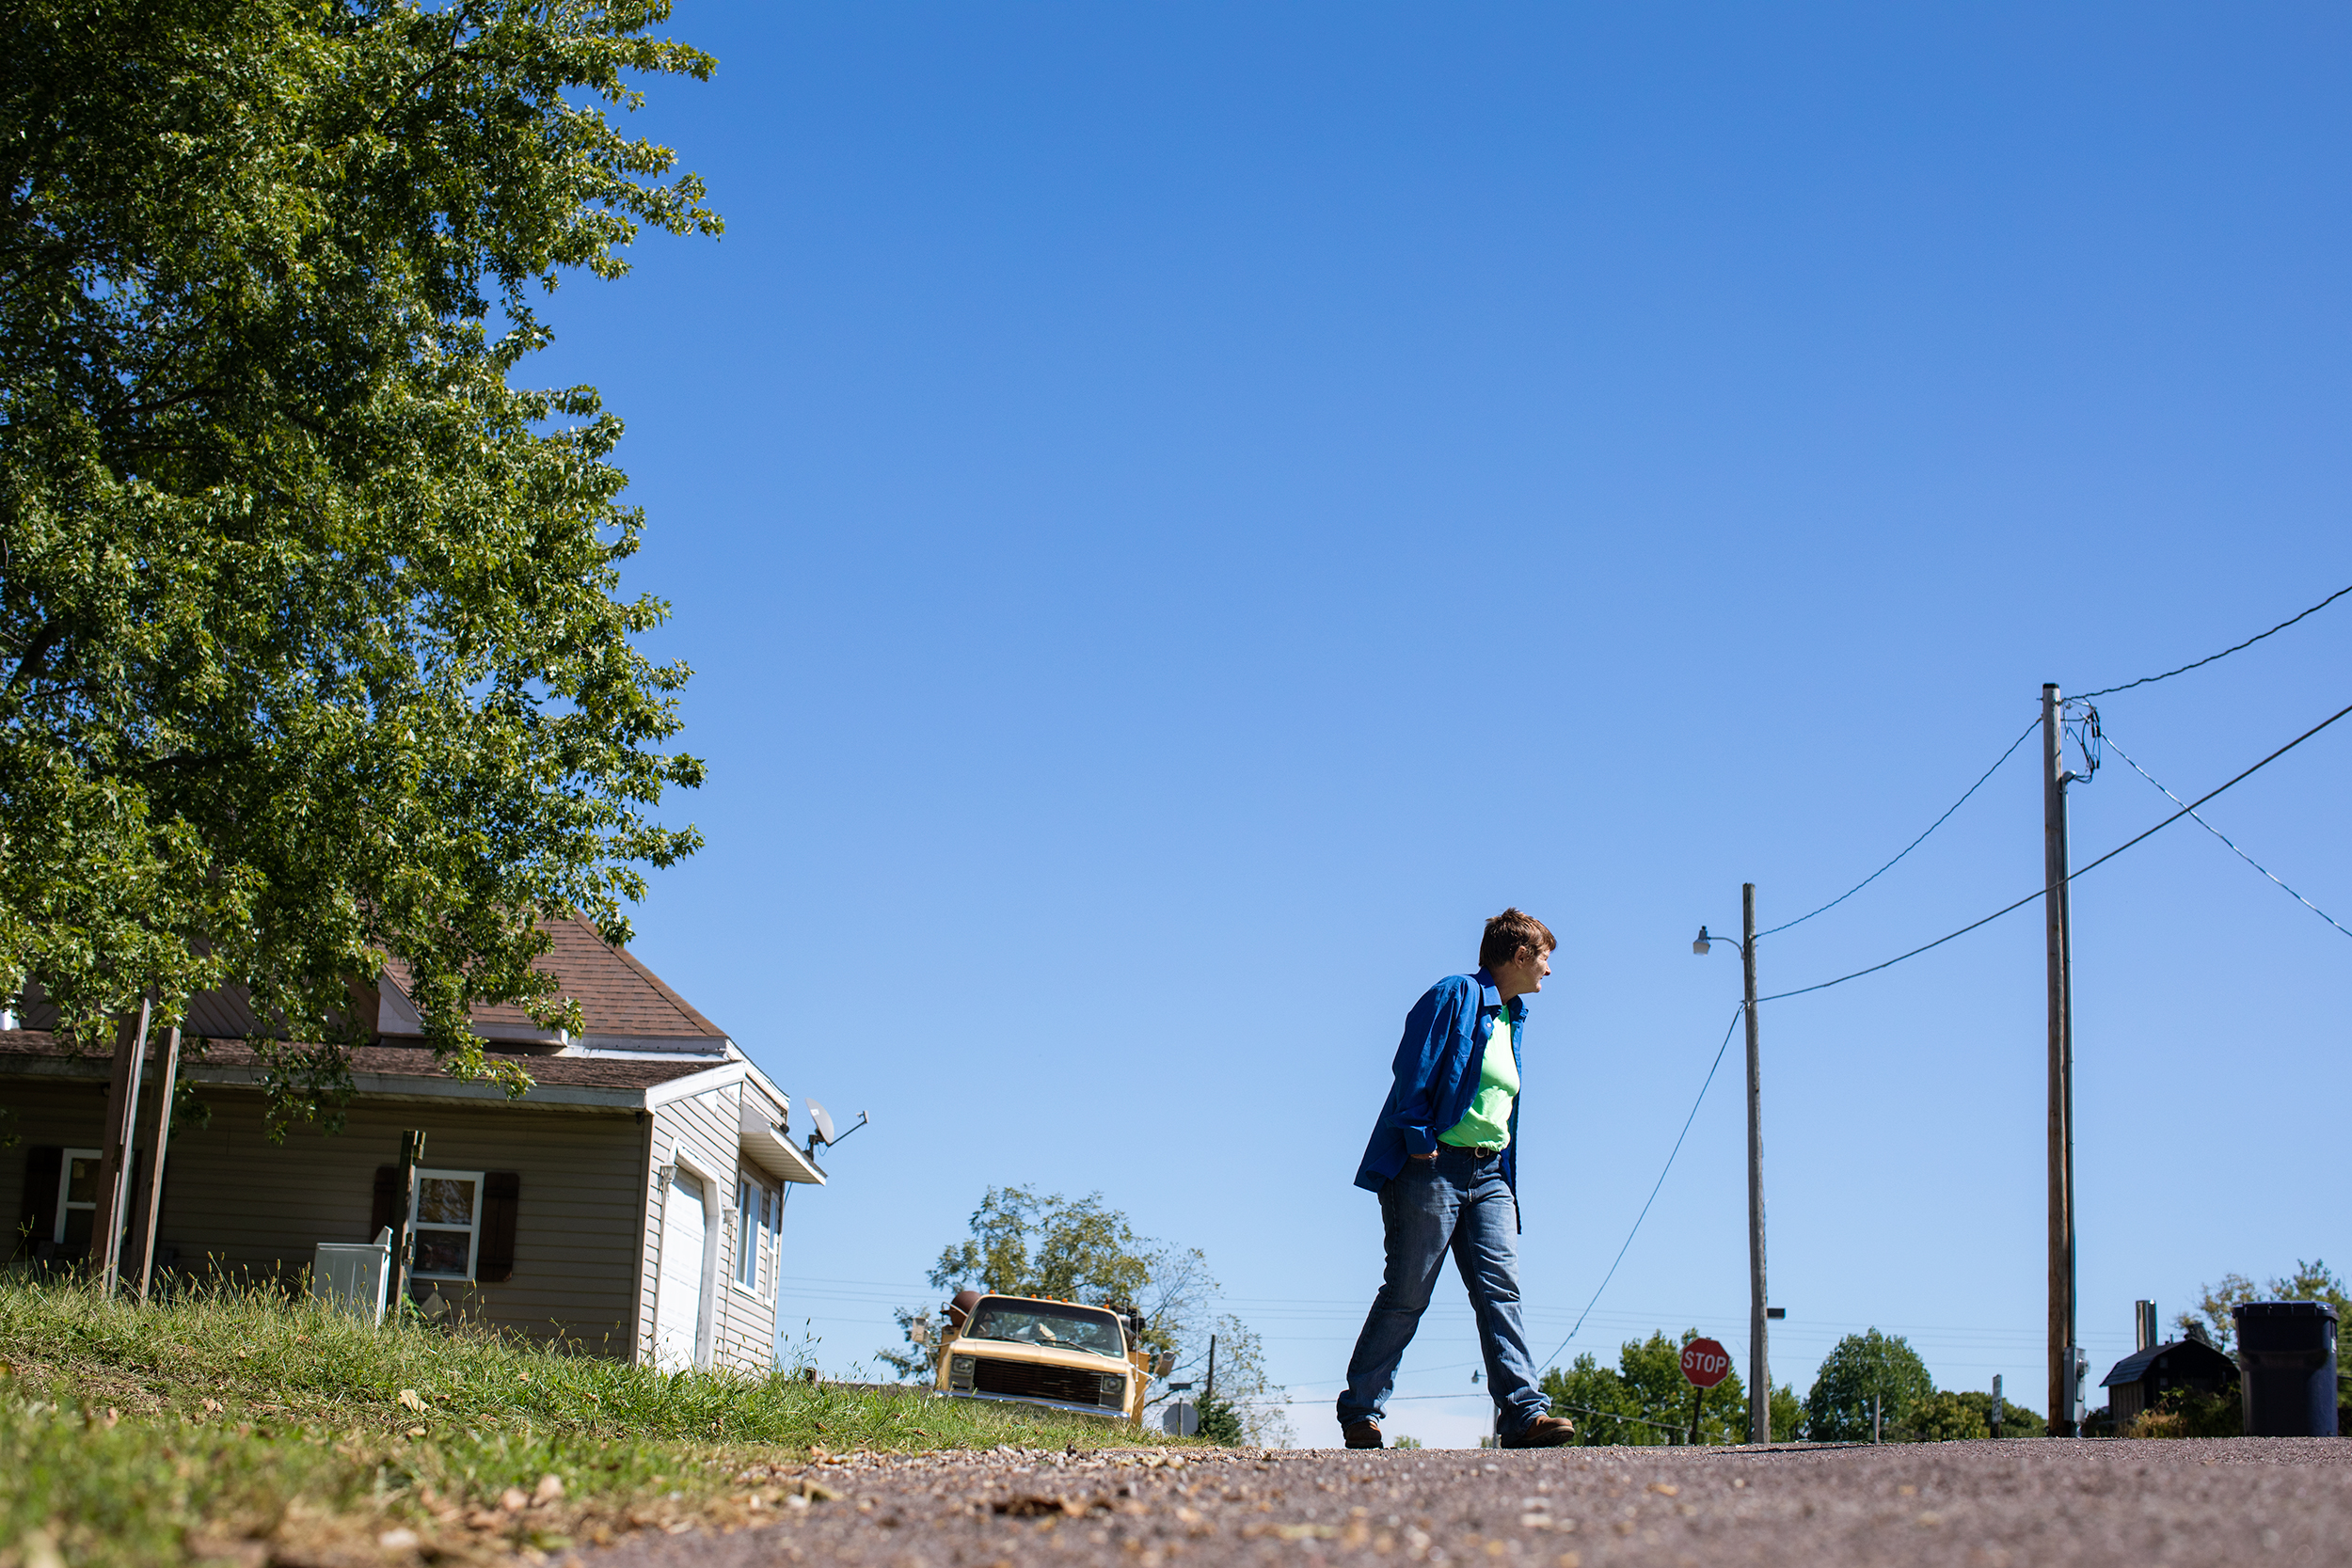 Brenda walks around her neighborhood in Mountain Grove, Mo. Although her difficult past and financial challenges keep her on the edge, she's determined to keep on going, looking for ways to survive.